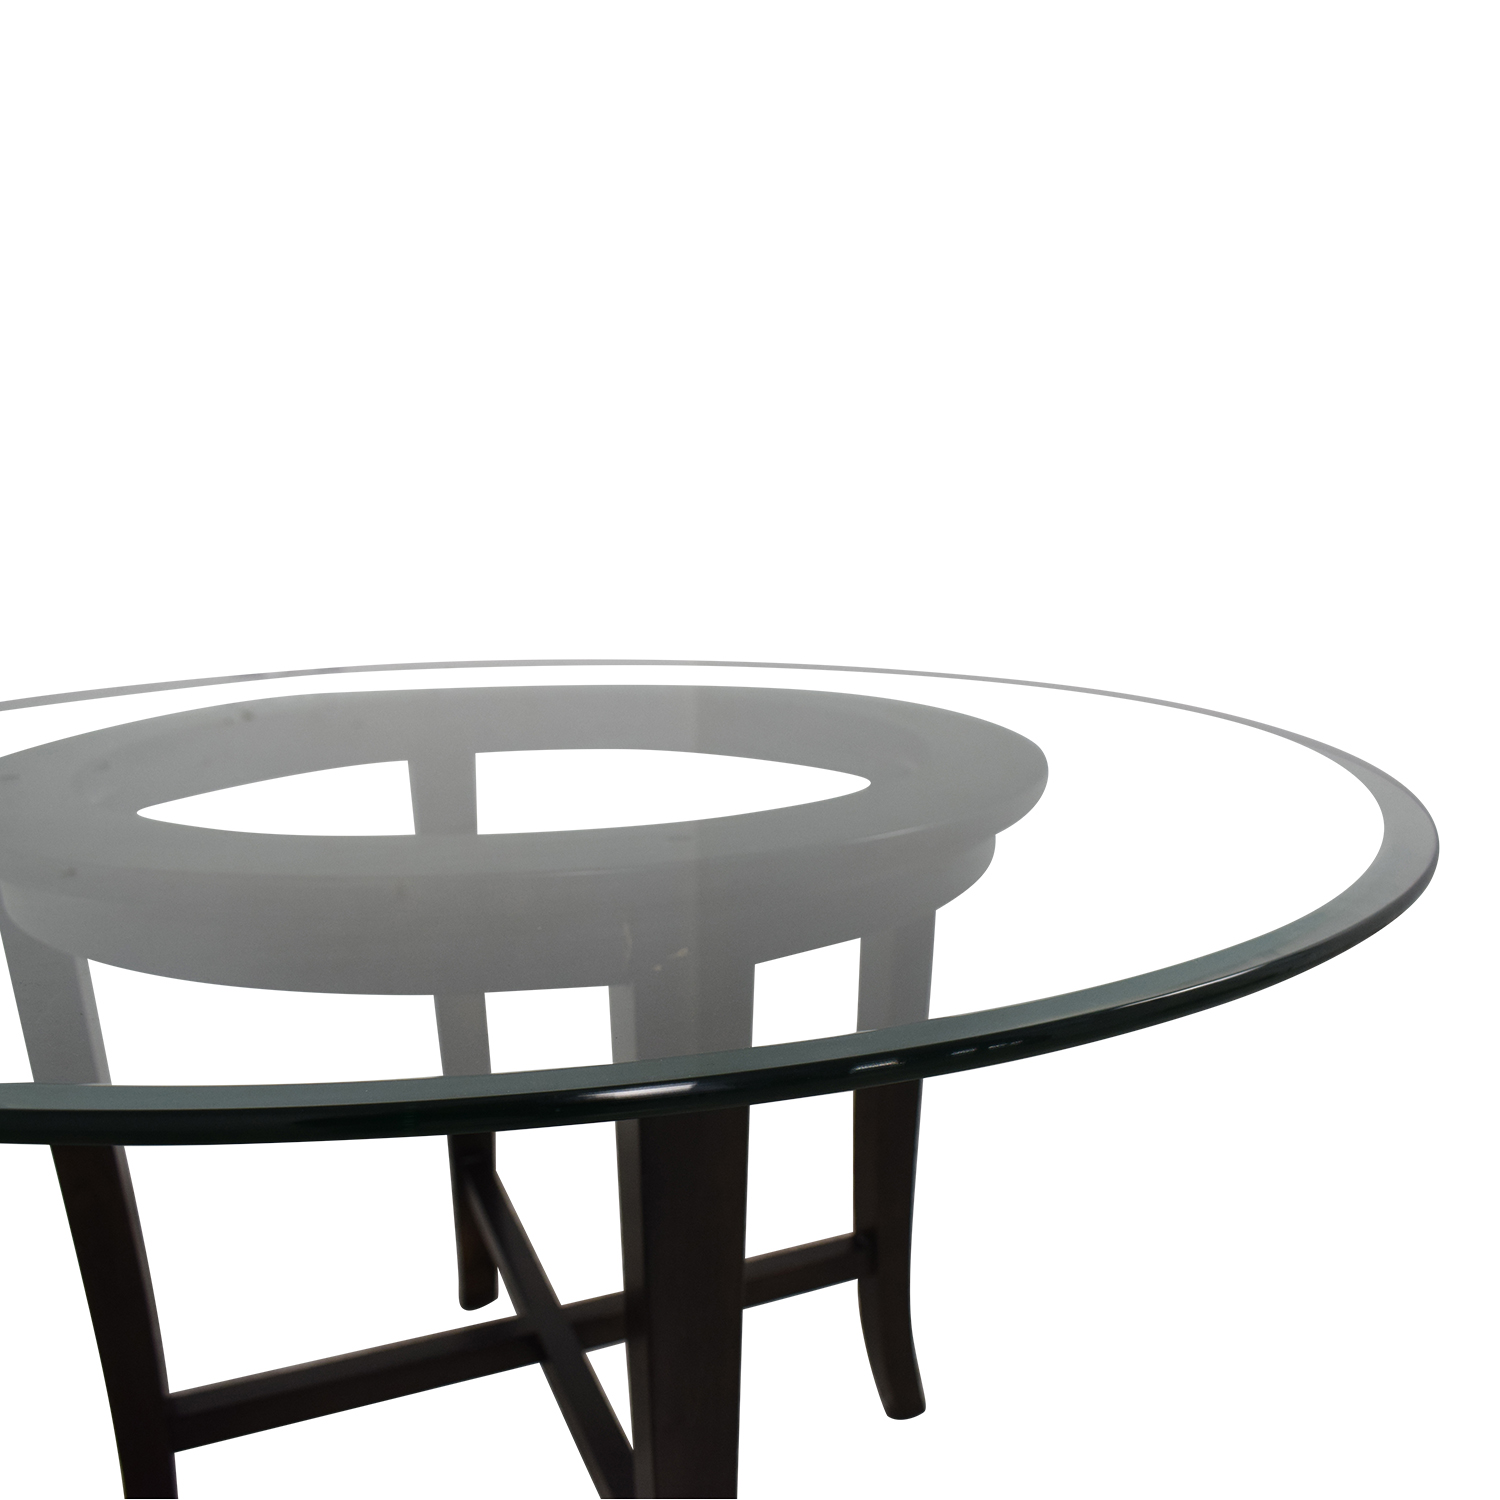 buy Crate & Barrel Halo Round Glass Dining Table Crate & Barrel Dinner Tables